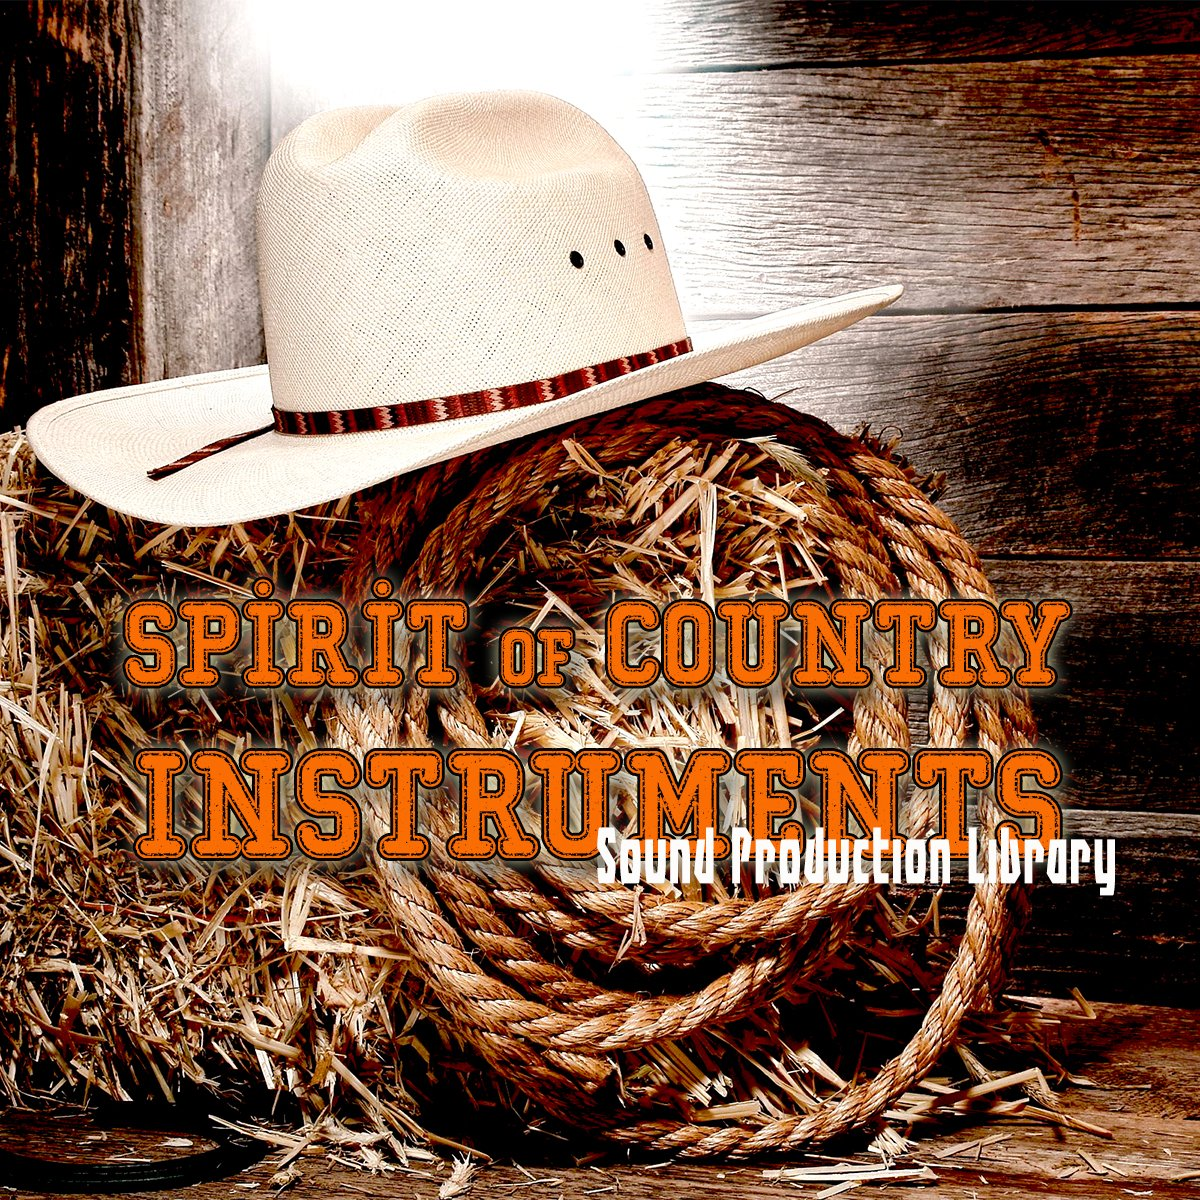 COUNTRY INSTRUMENTS - PERFECT ORIGINAL WAVE SAMPLES LIBRARY on DVD by SoundLoad